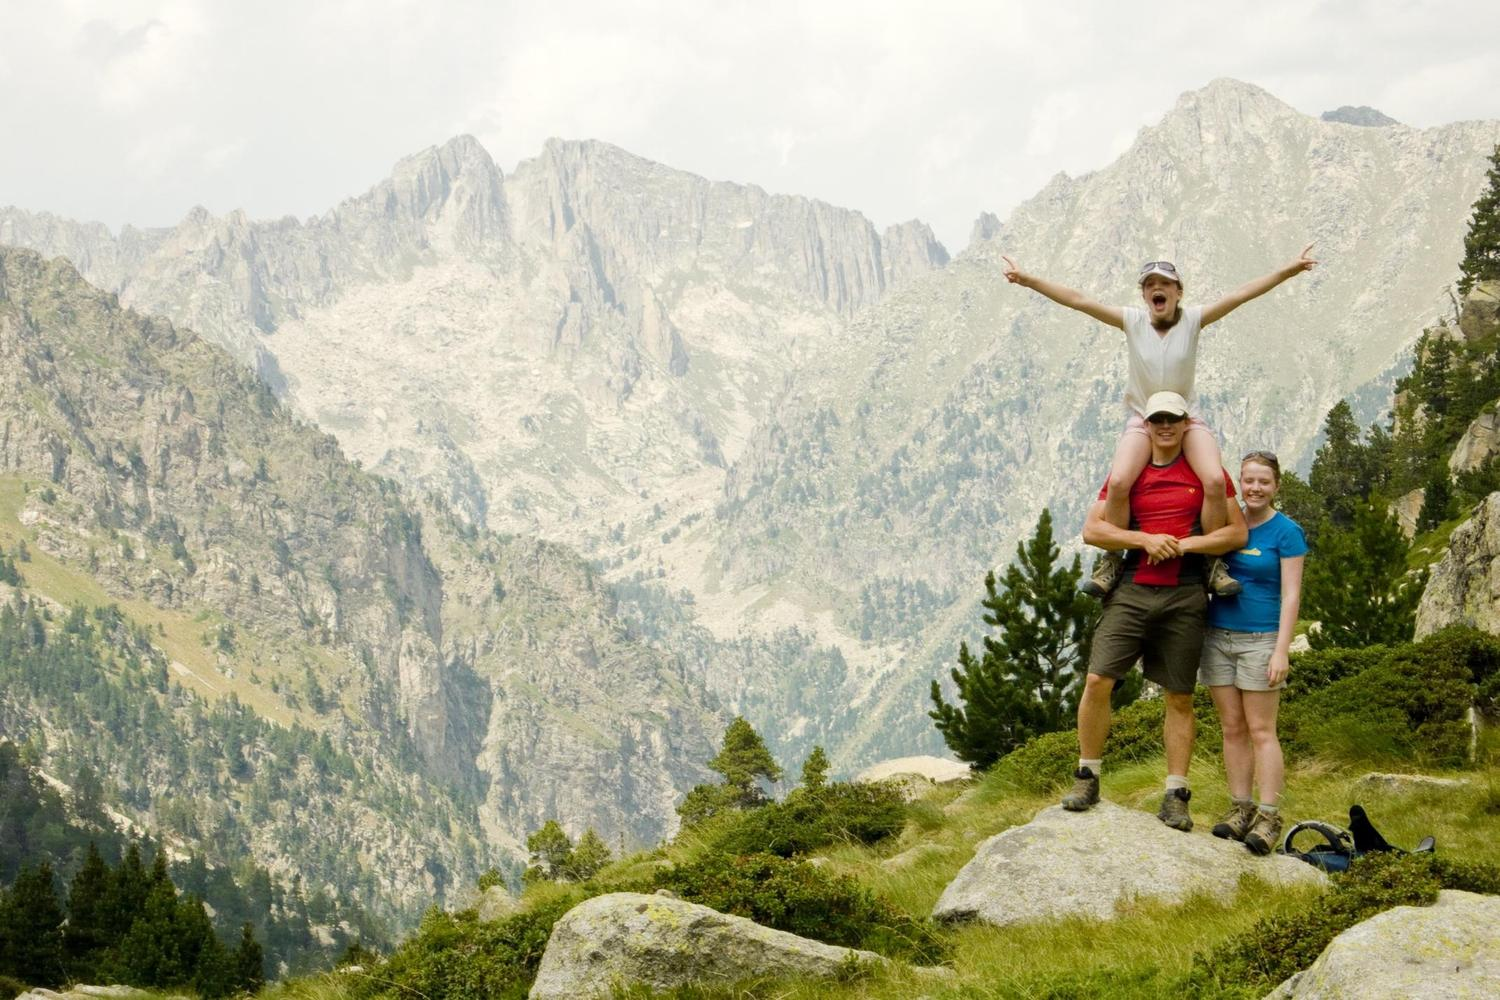 That sense of achievement at the top of the Pyrenees